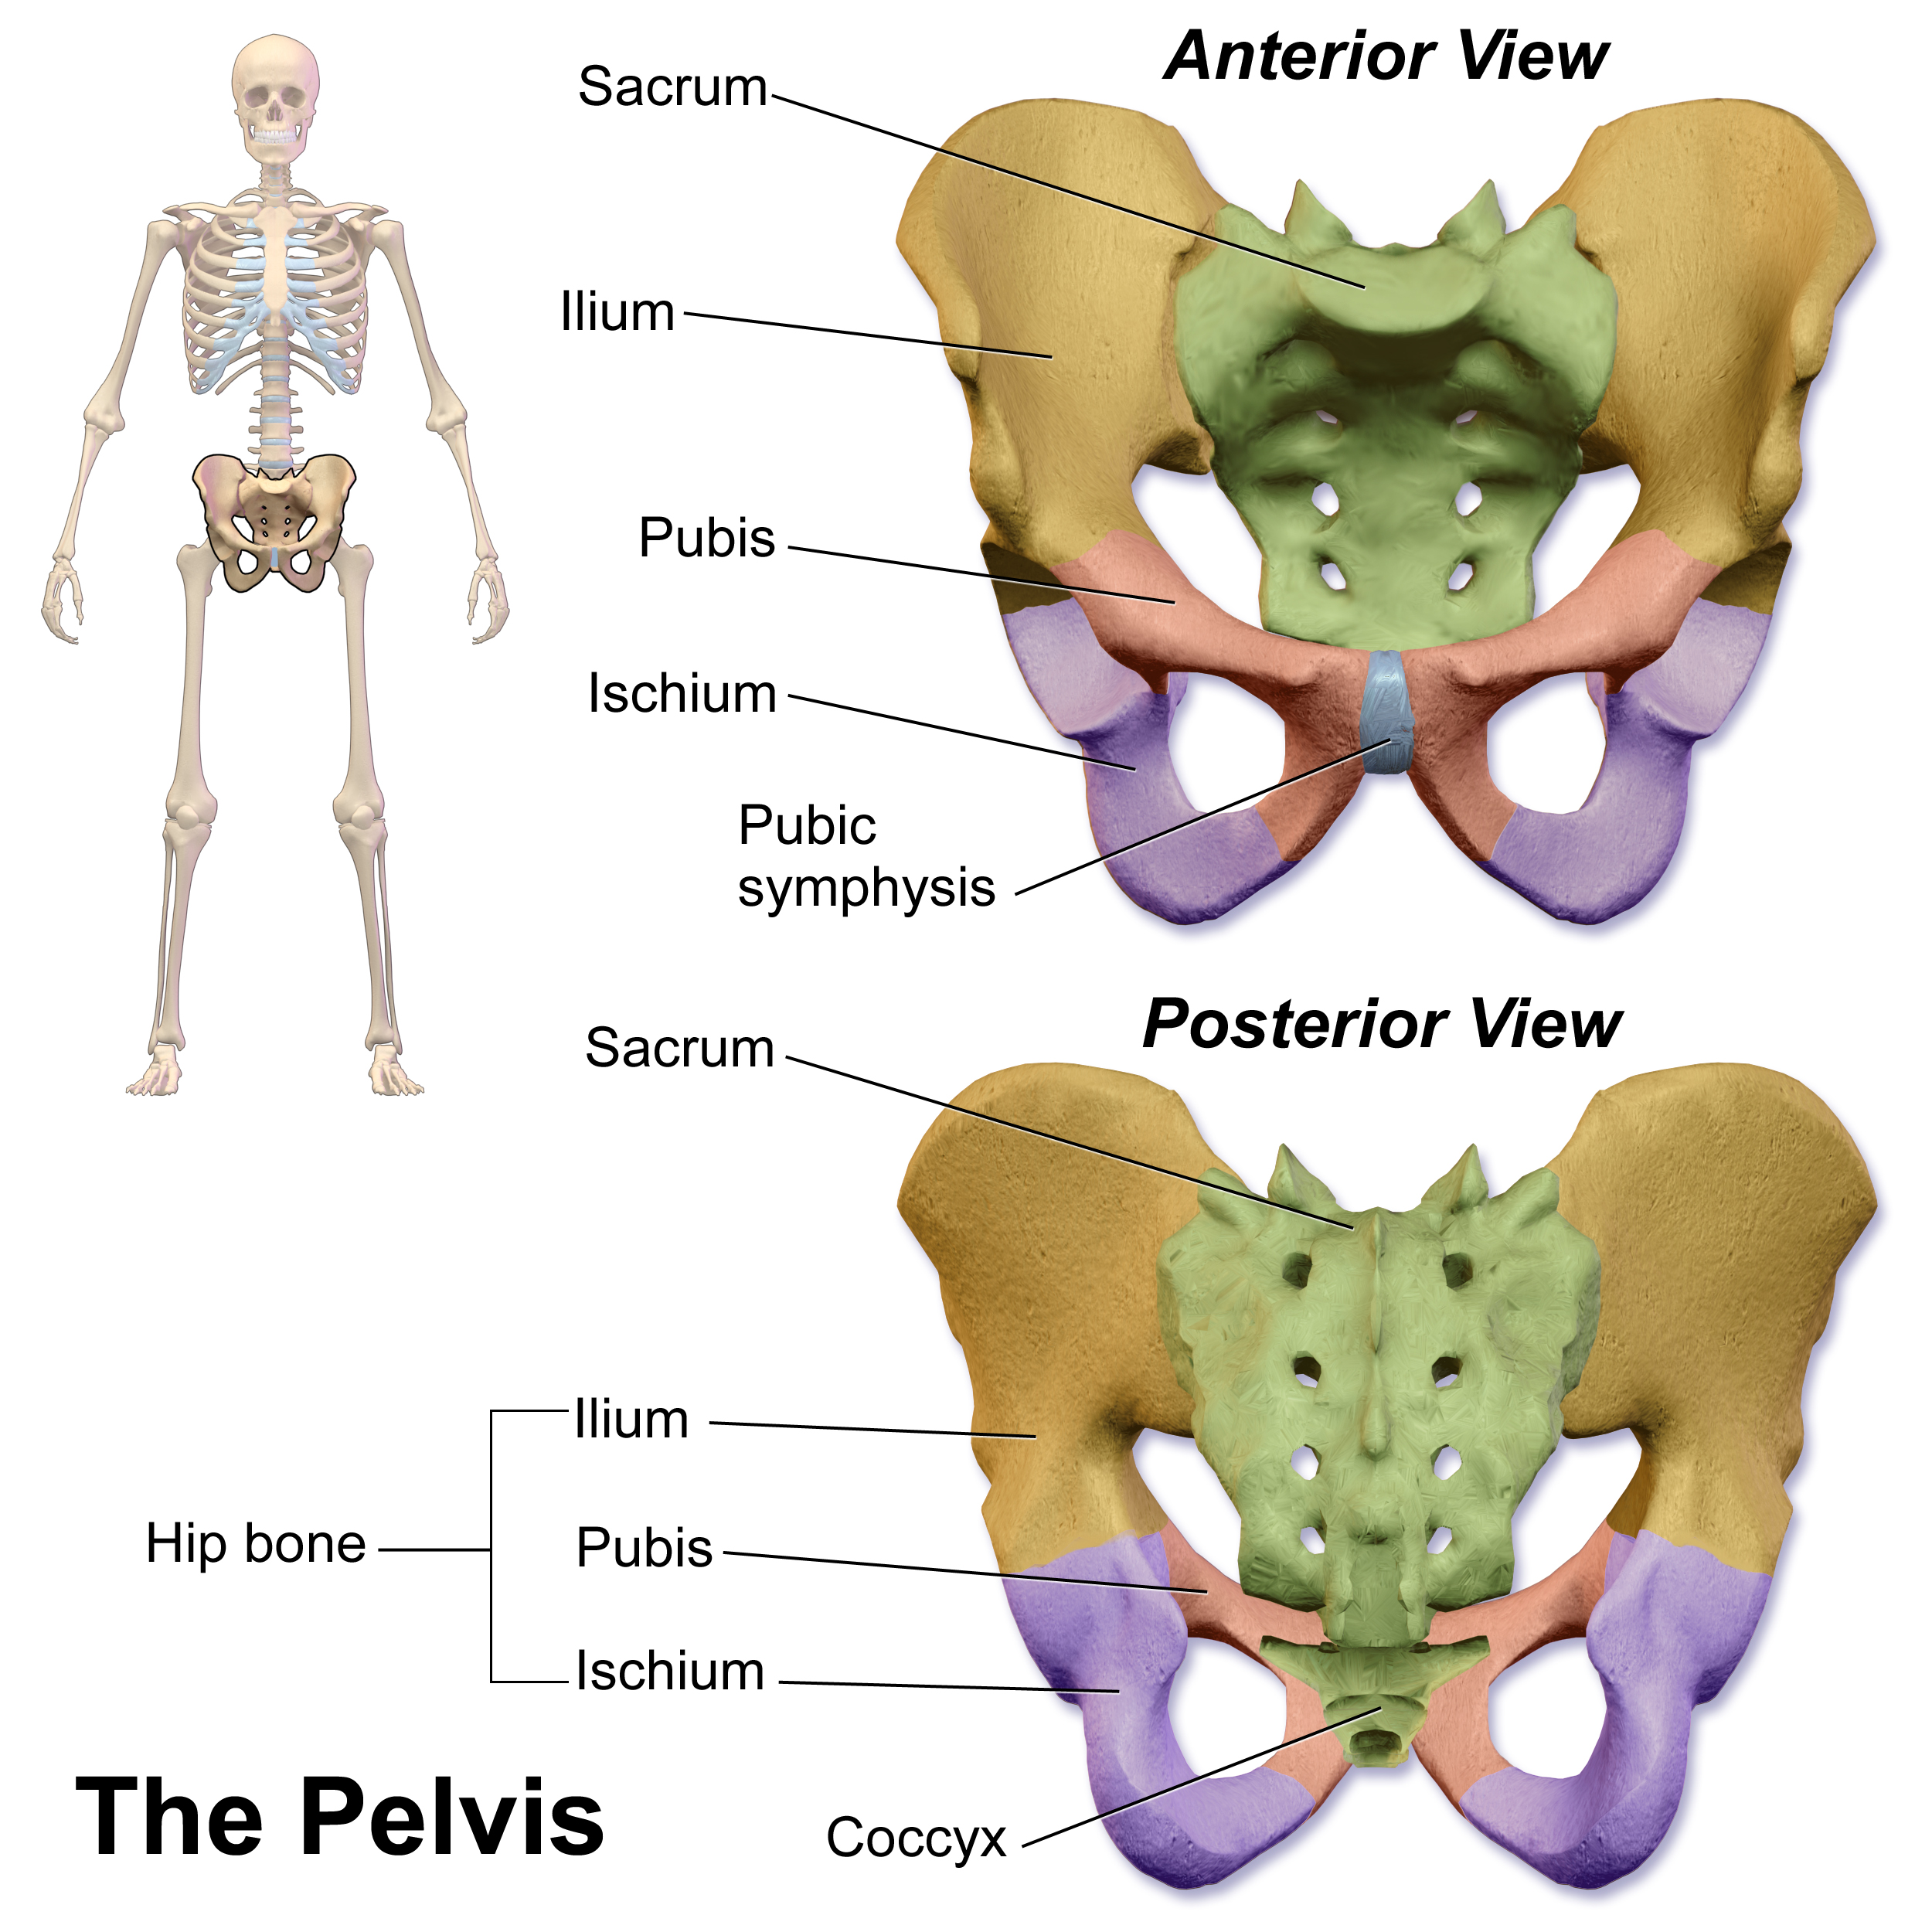 Pubis skeleton